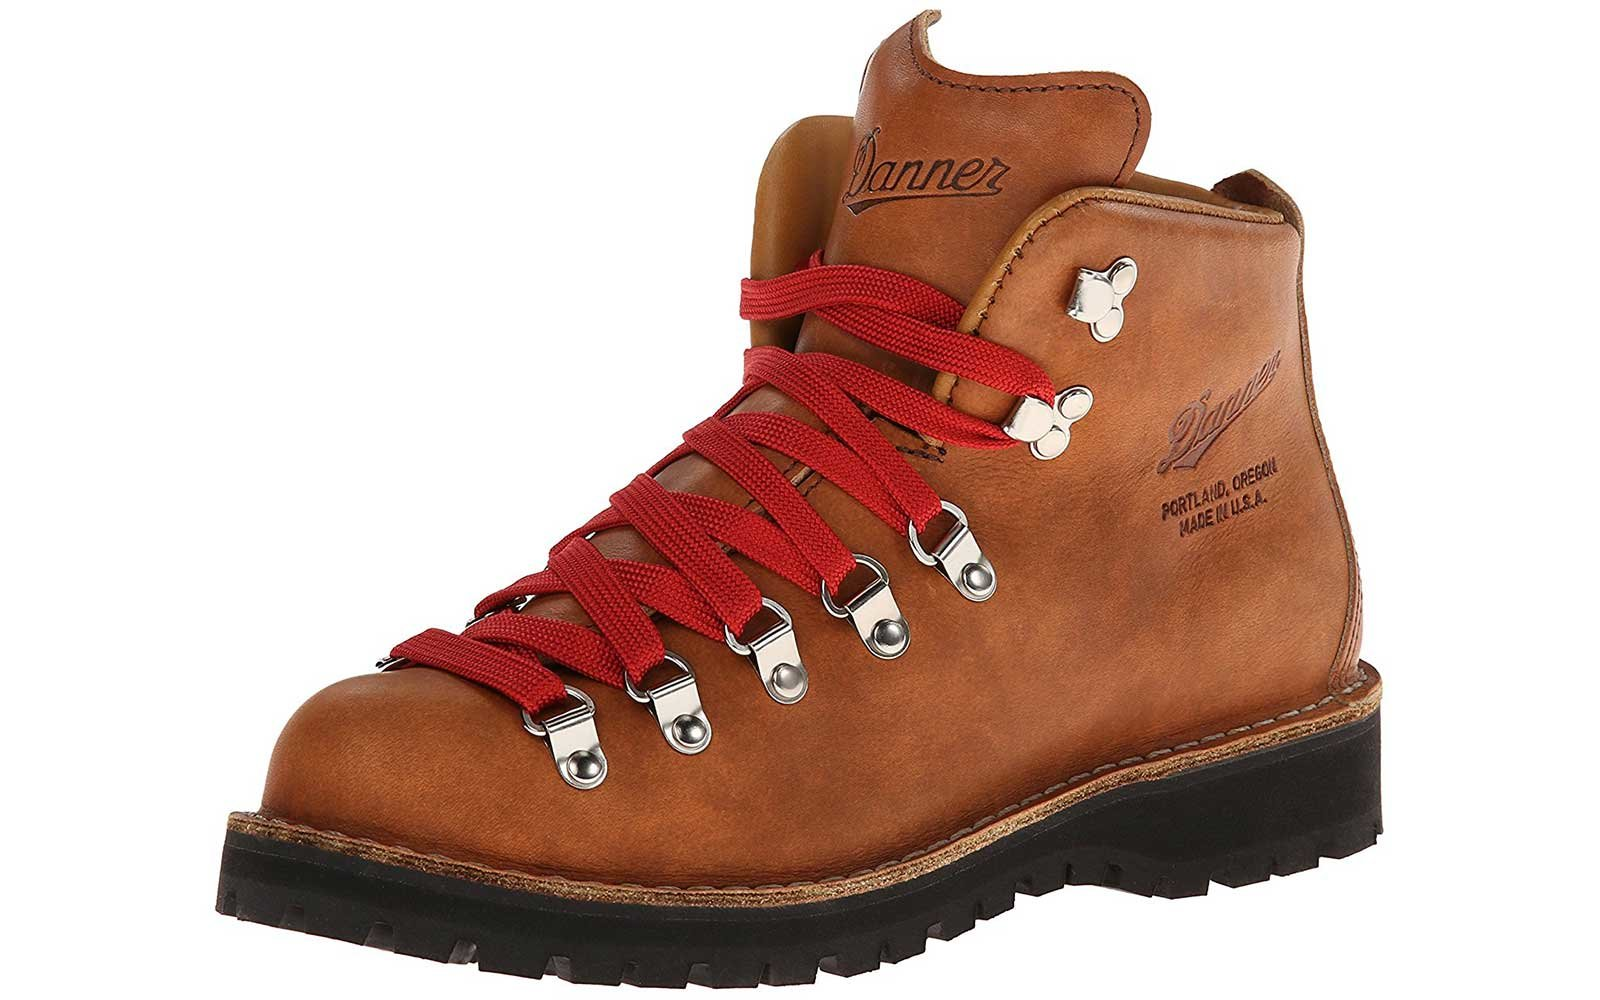 Red-Laced Hiking shoes from Danner